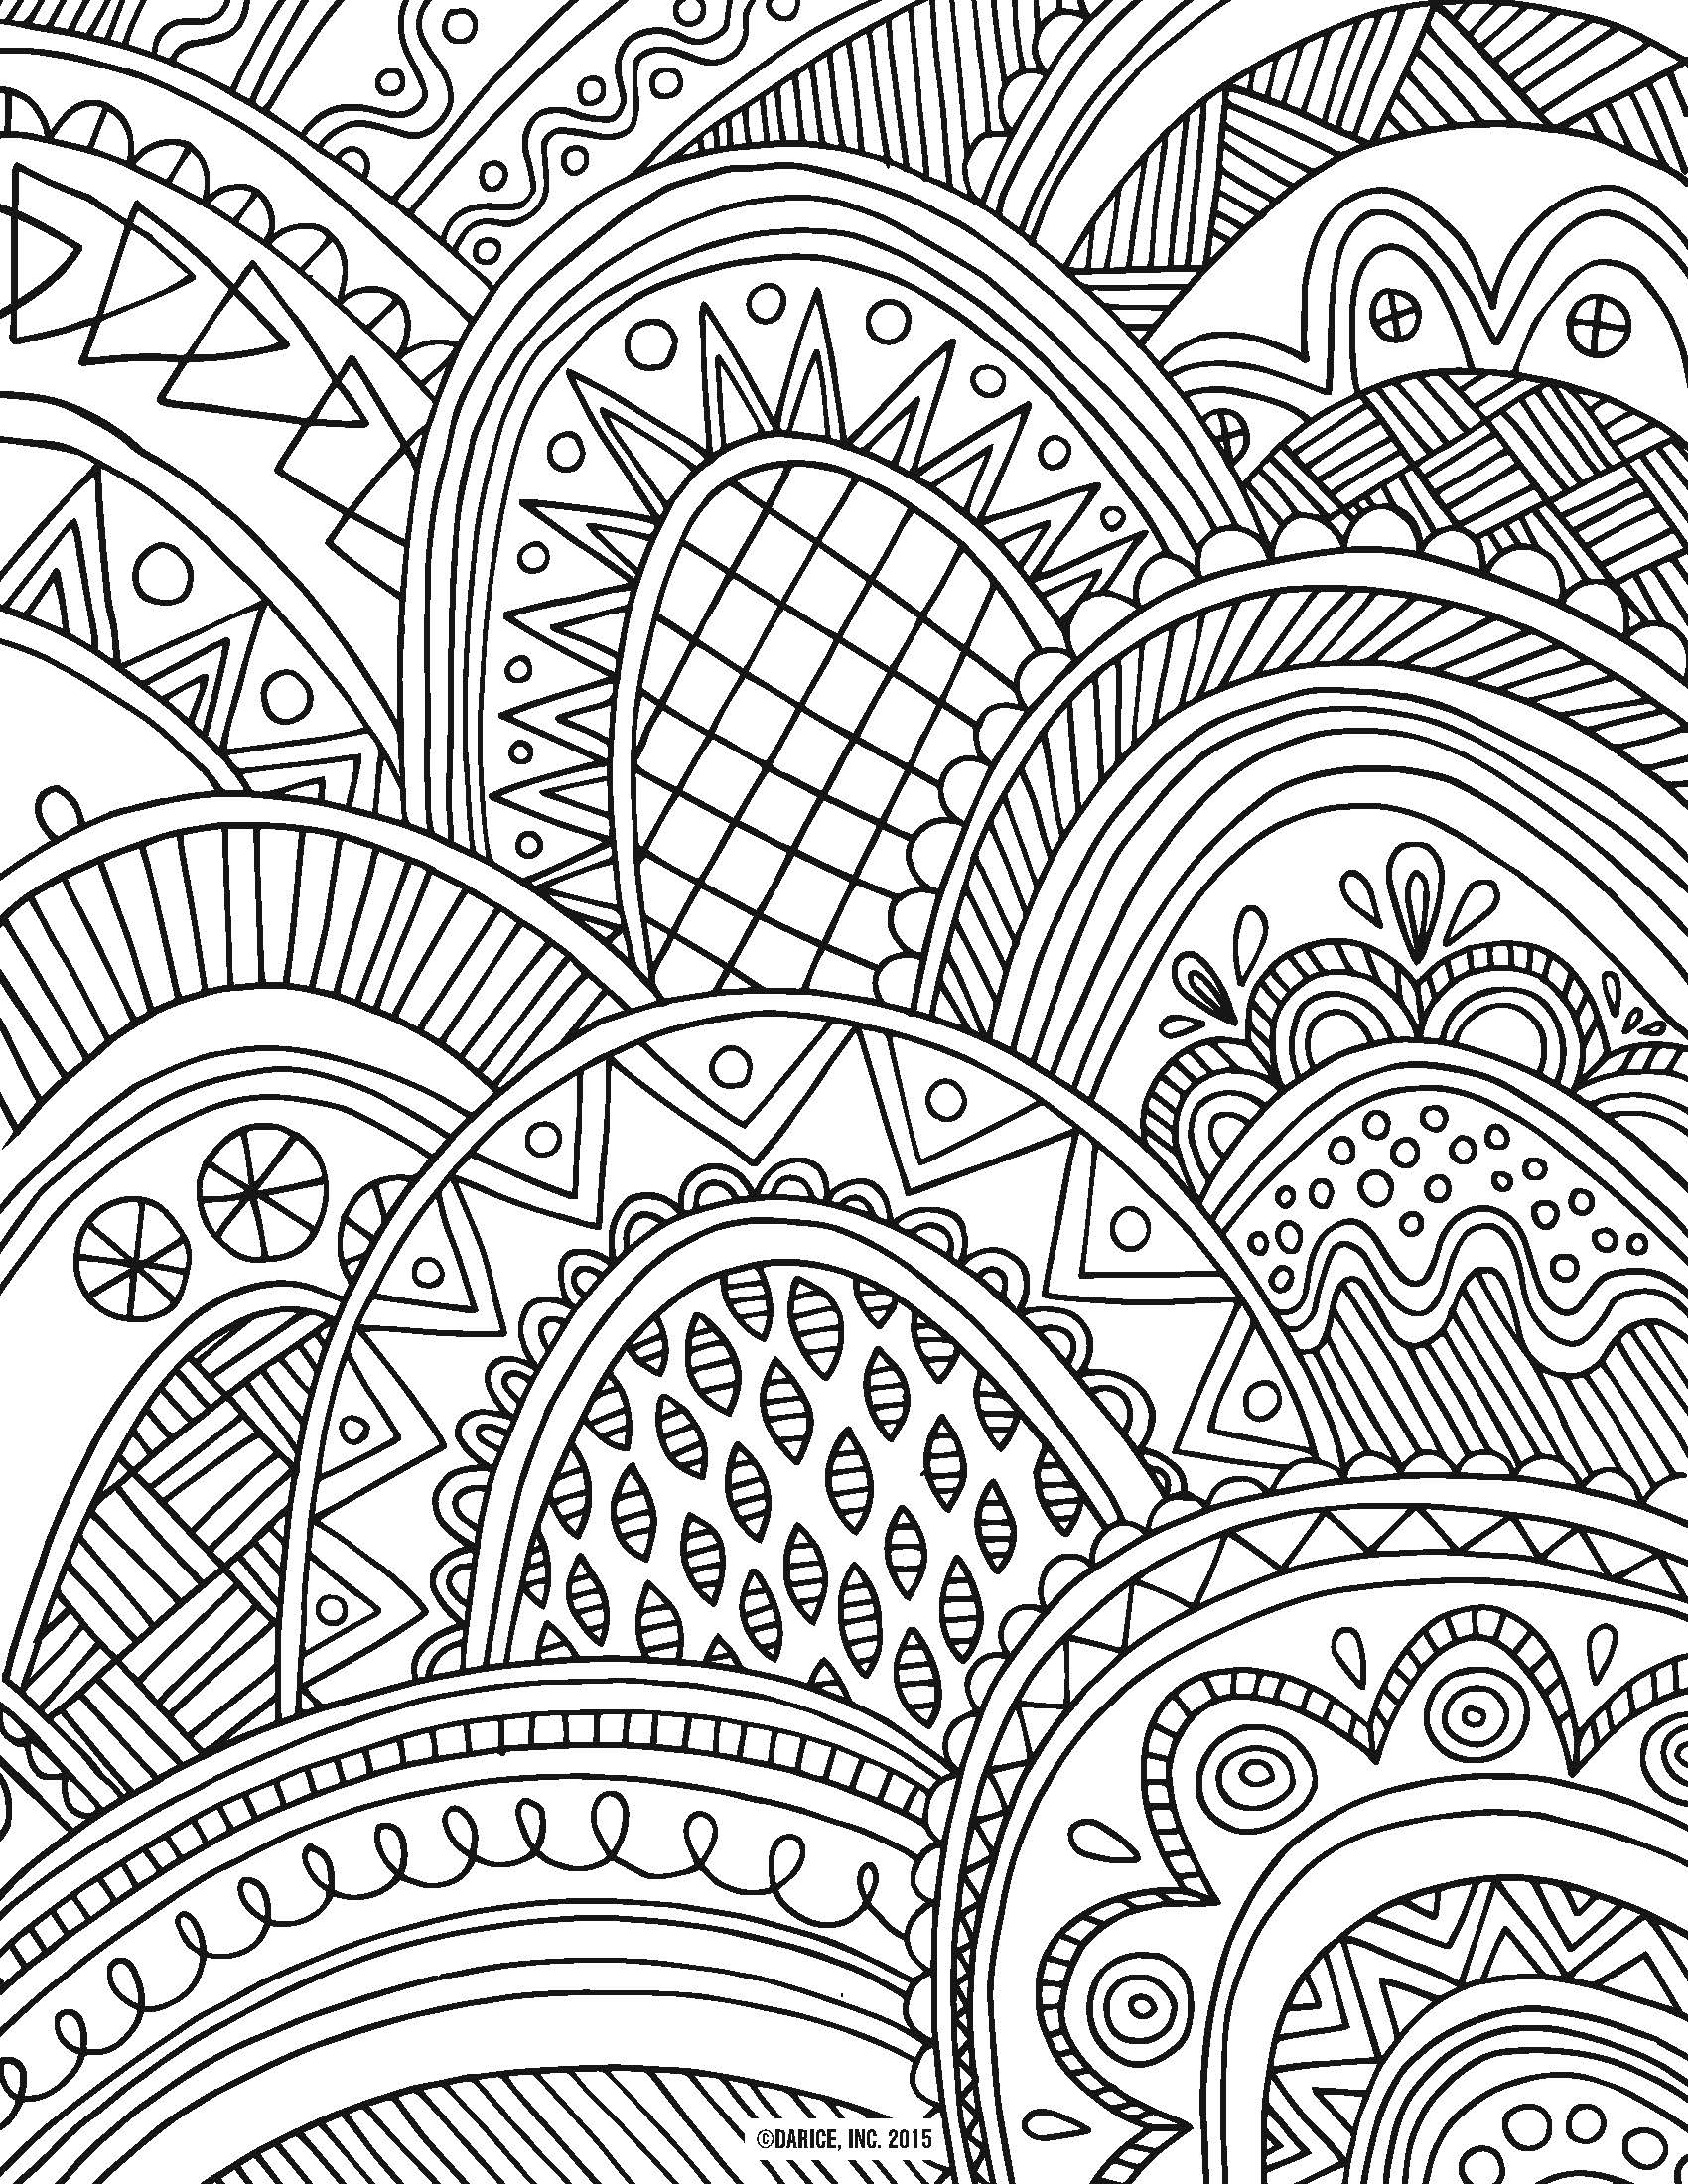 coloring pictures printable 20 attractive coloring pages for adults we need fun printable pictures coloring